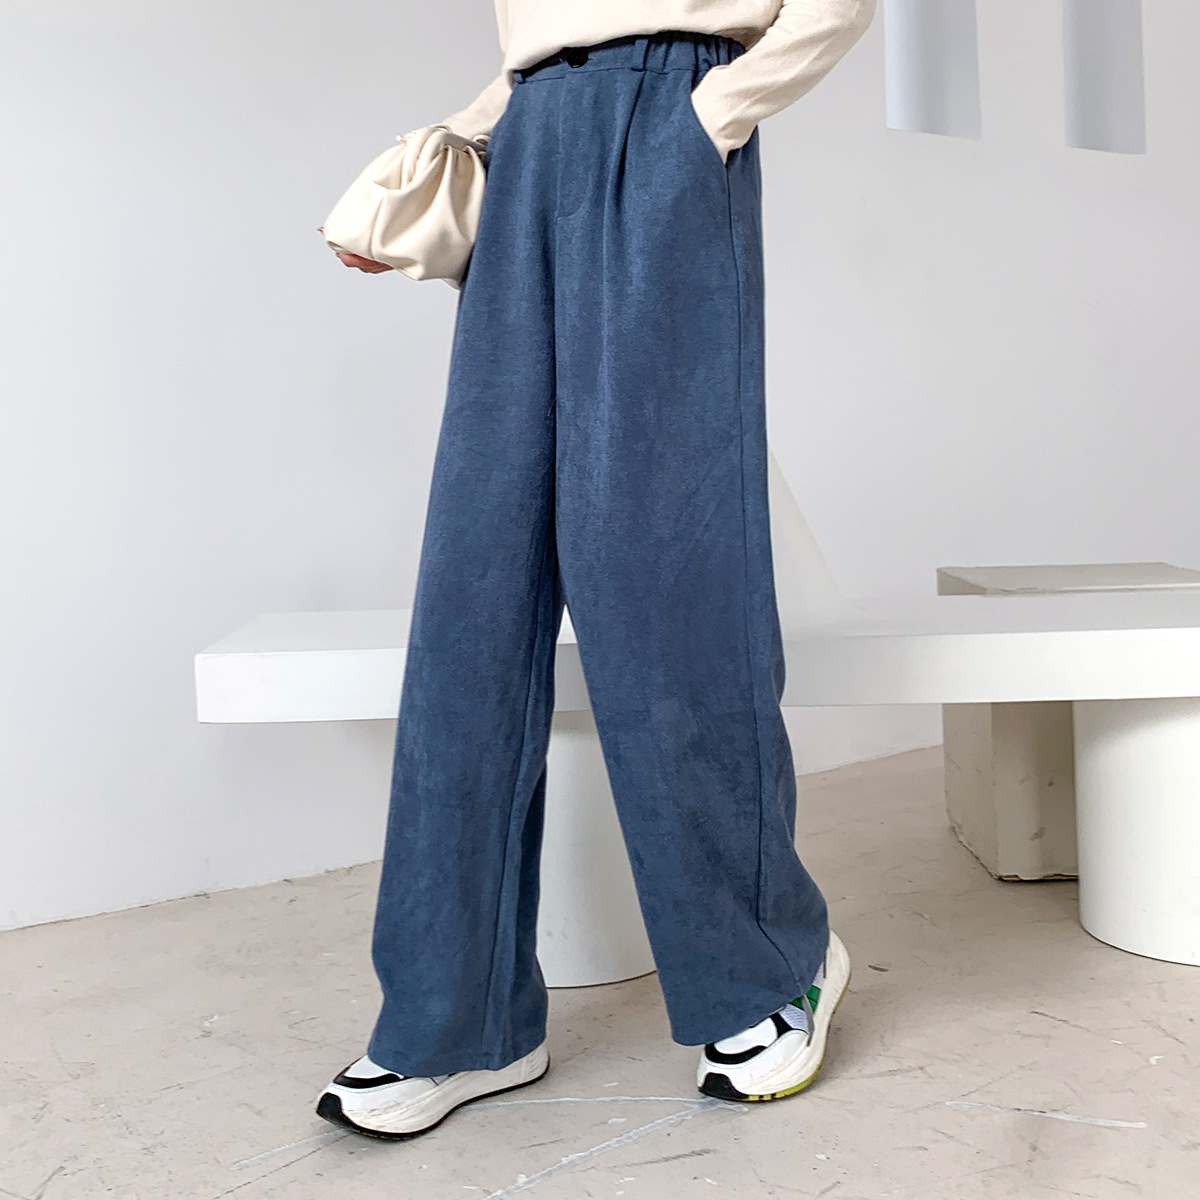 Sherhure 2020 Women Spring Pants Pure Color Stretch Waist Women Wide Leg Straight Pants Fashion Women Pants Female Trousers